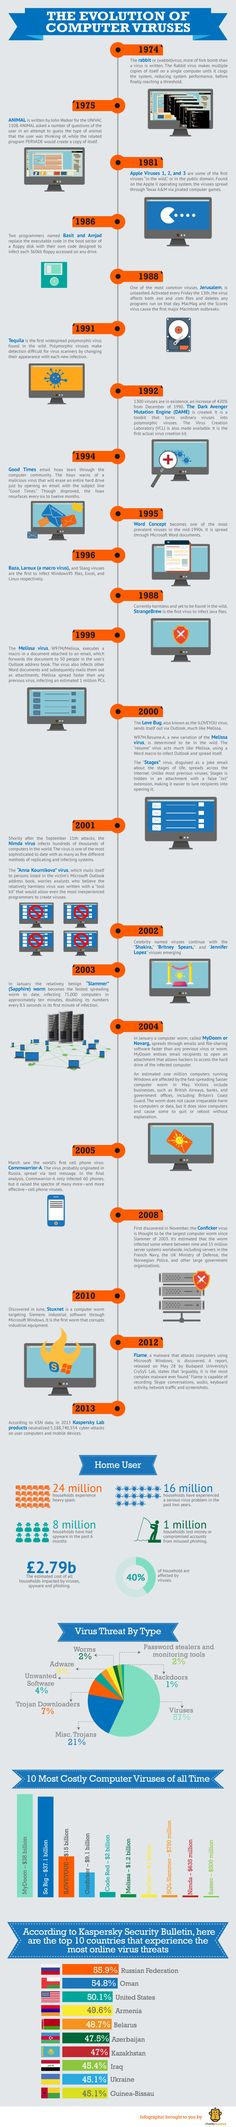 The Evolution of Computer Viruses